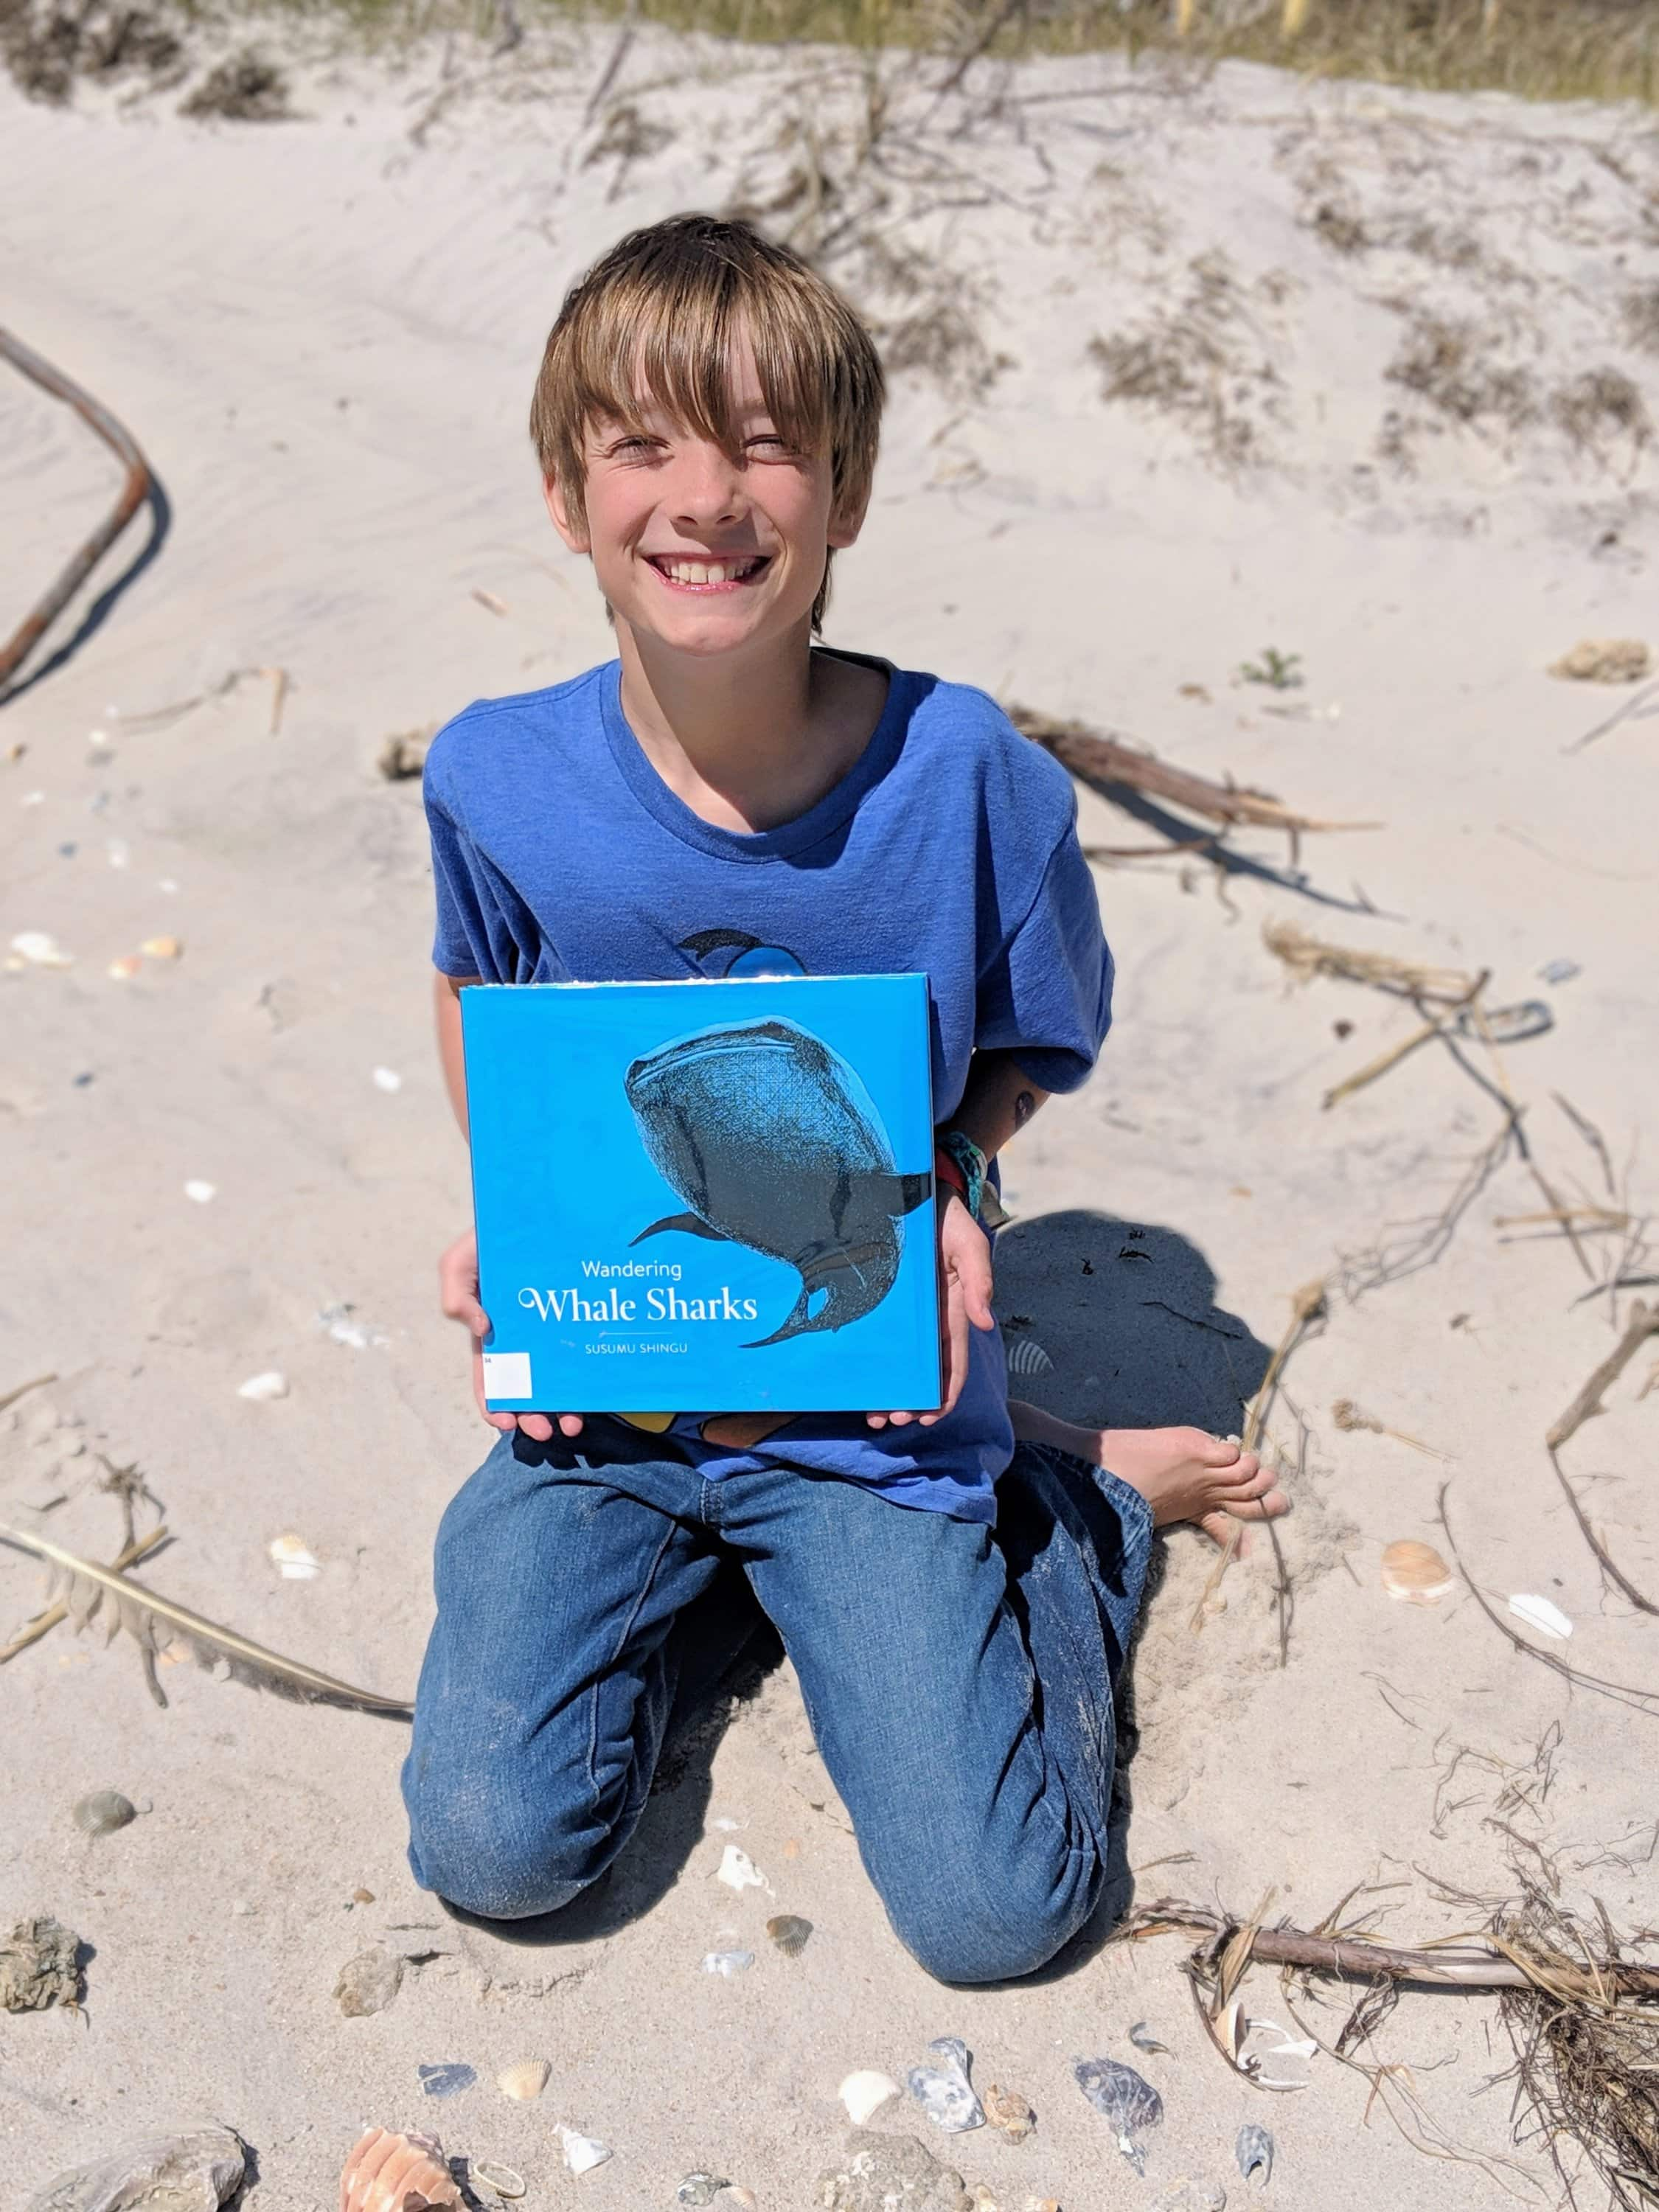 8 kid's books about the ocean whale sharks